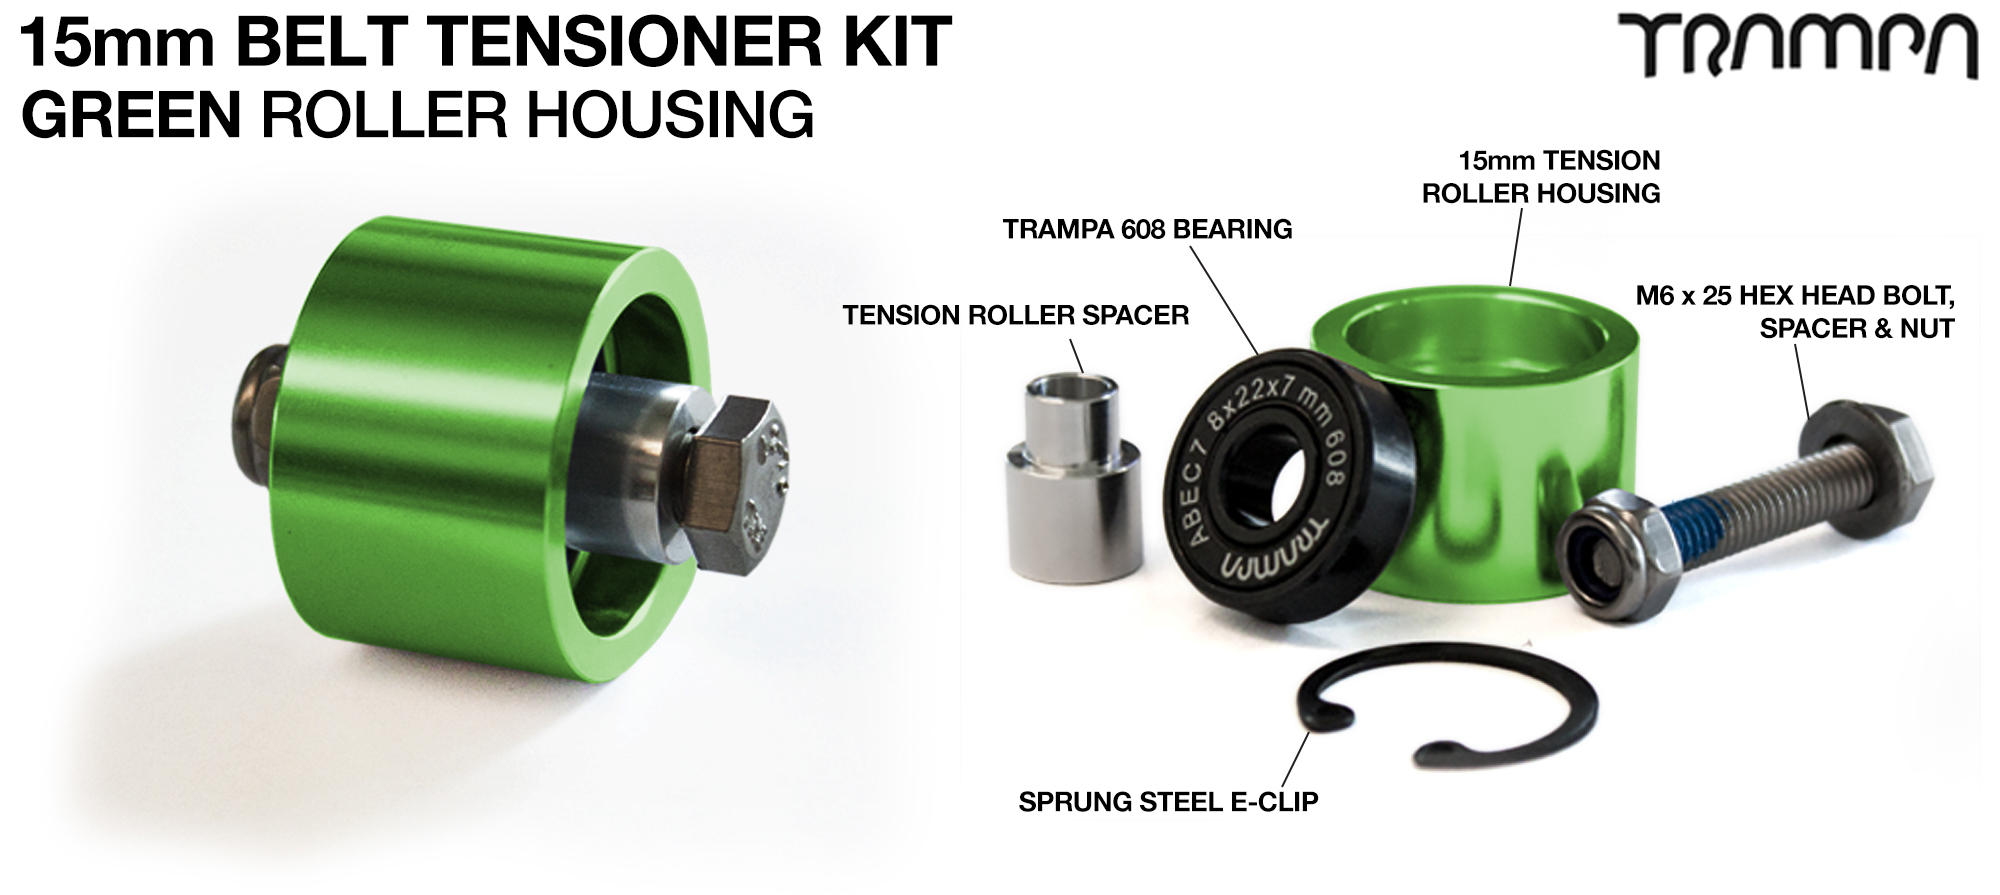 15mm Belt Tensioner - GREEN